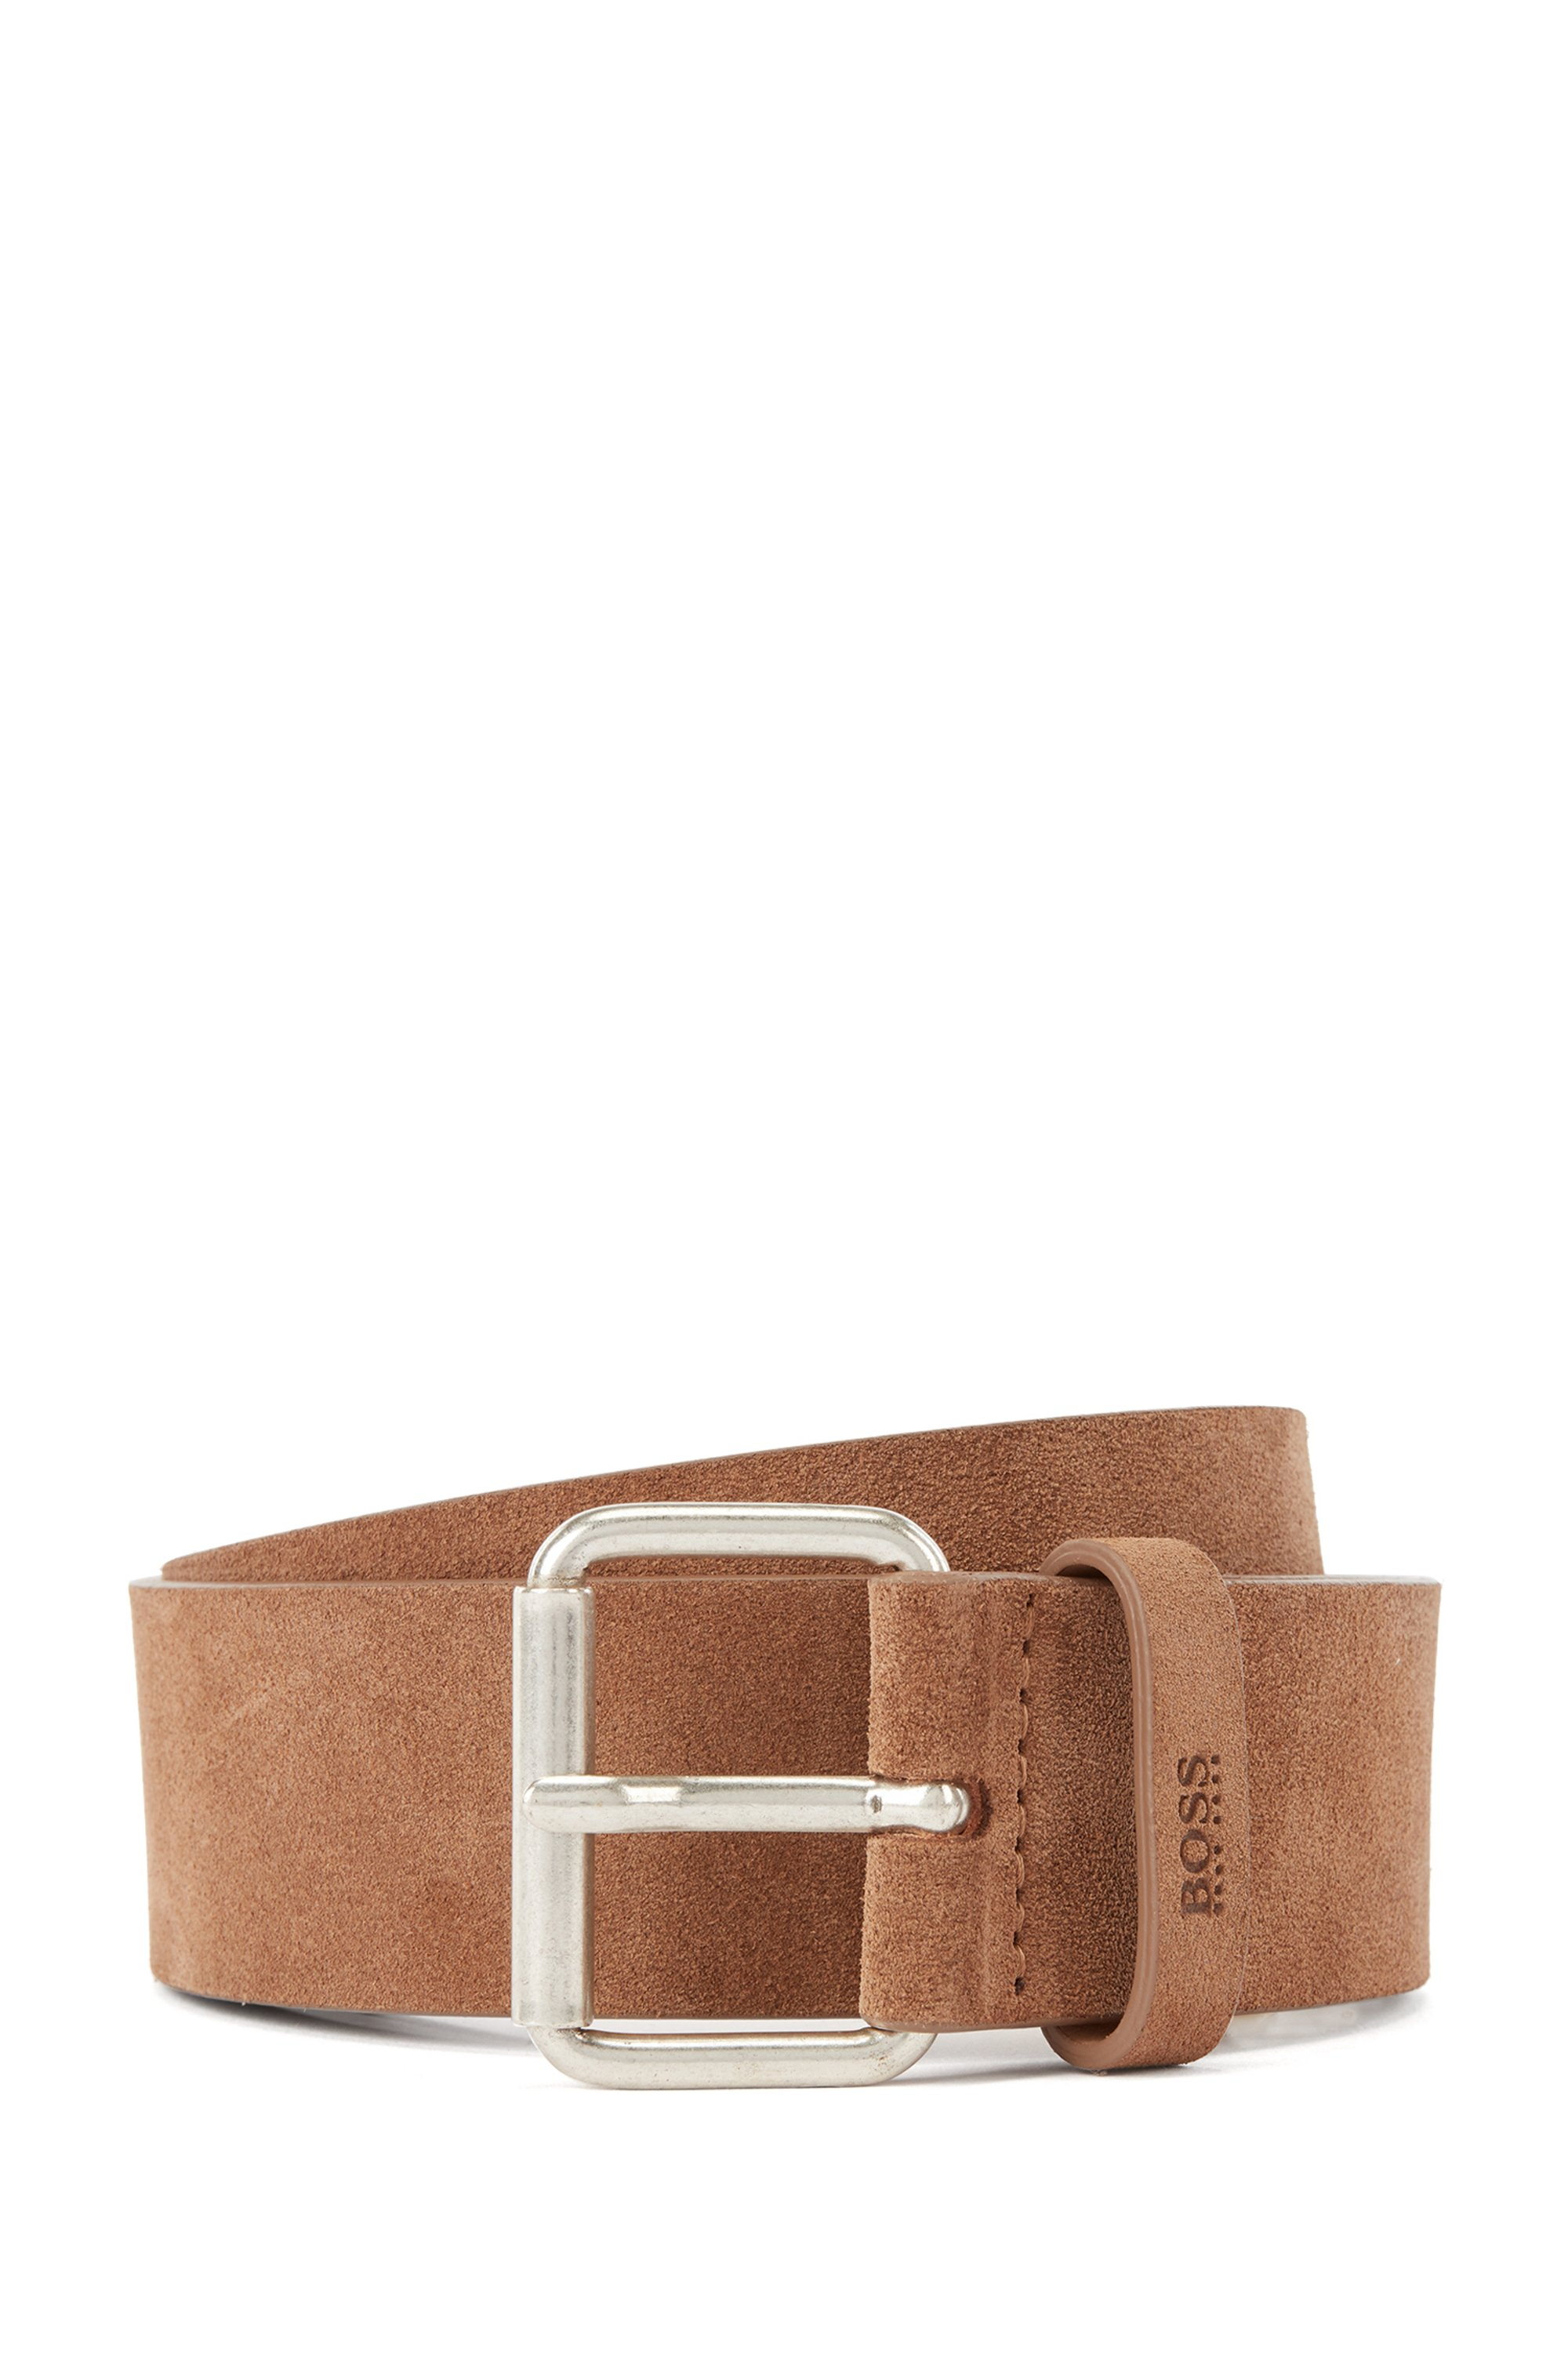 Suede belt with roller buckle and logo keeper, Brown